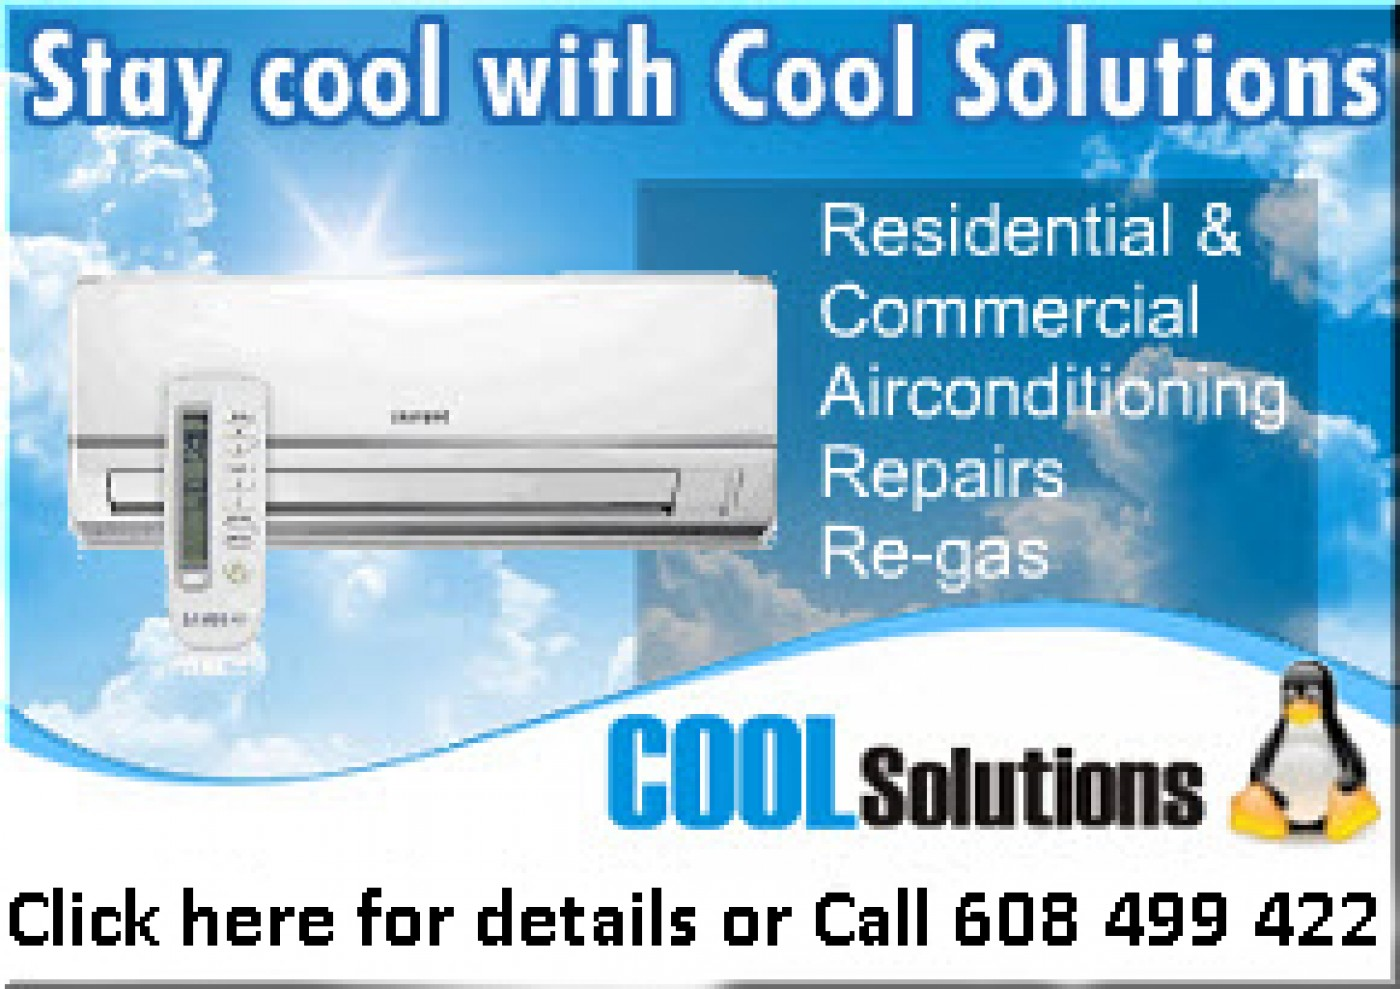 Cool Solutions Air Conditioning installation, repair and re-gassing throughout the Murcia Region